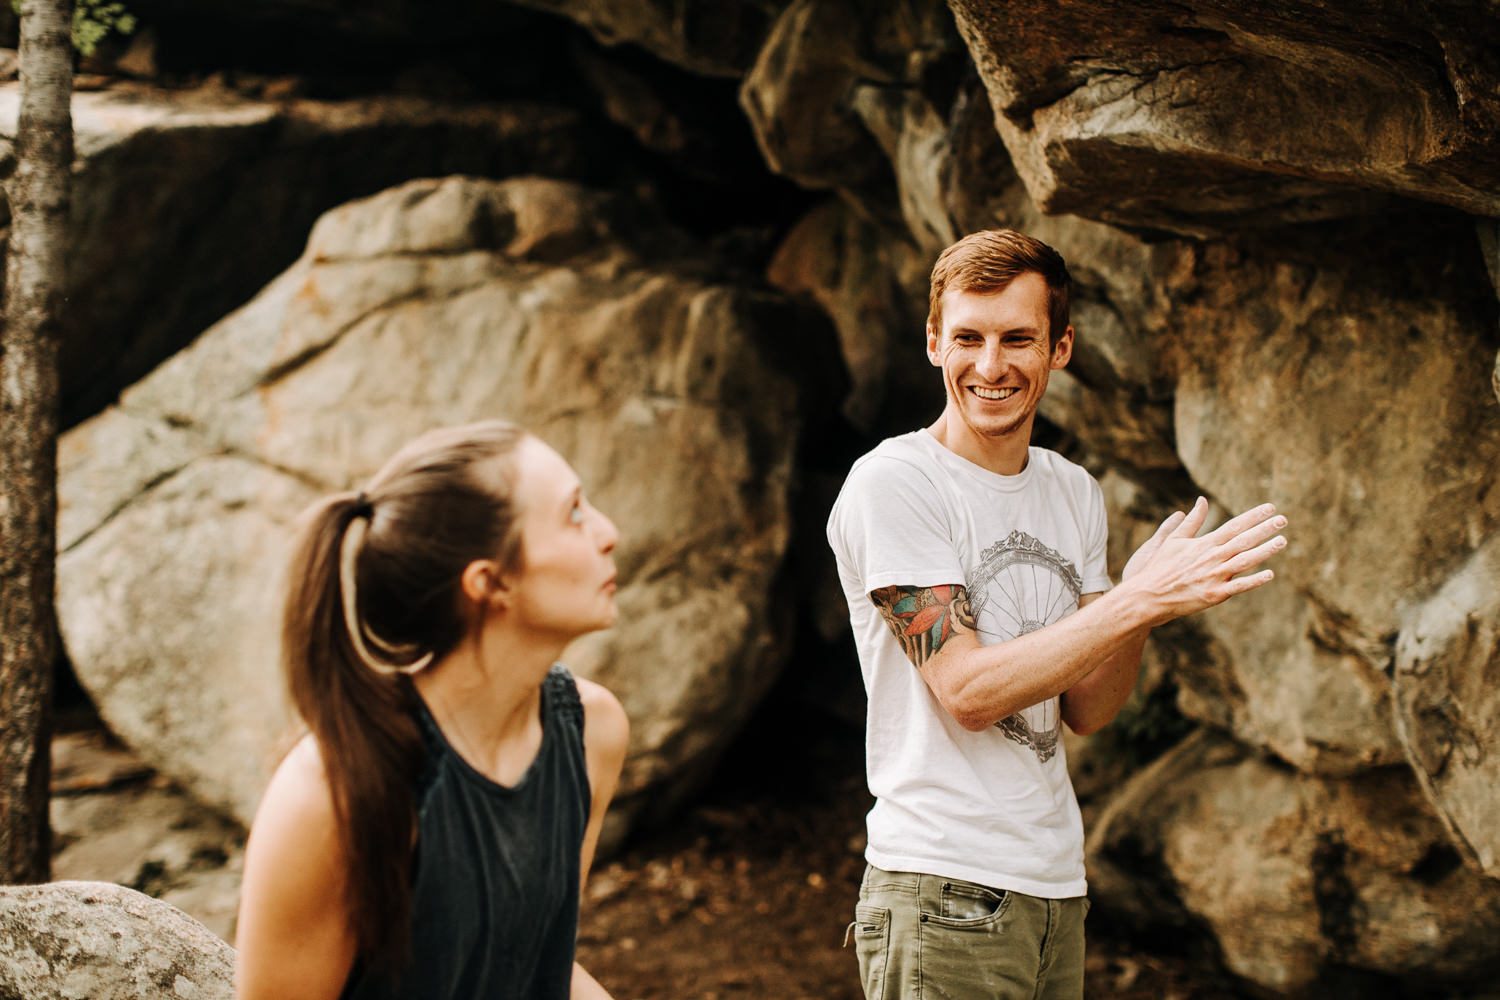 Man smiling and laughing while chalking his hands for rock climbing as a girl looks on